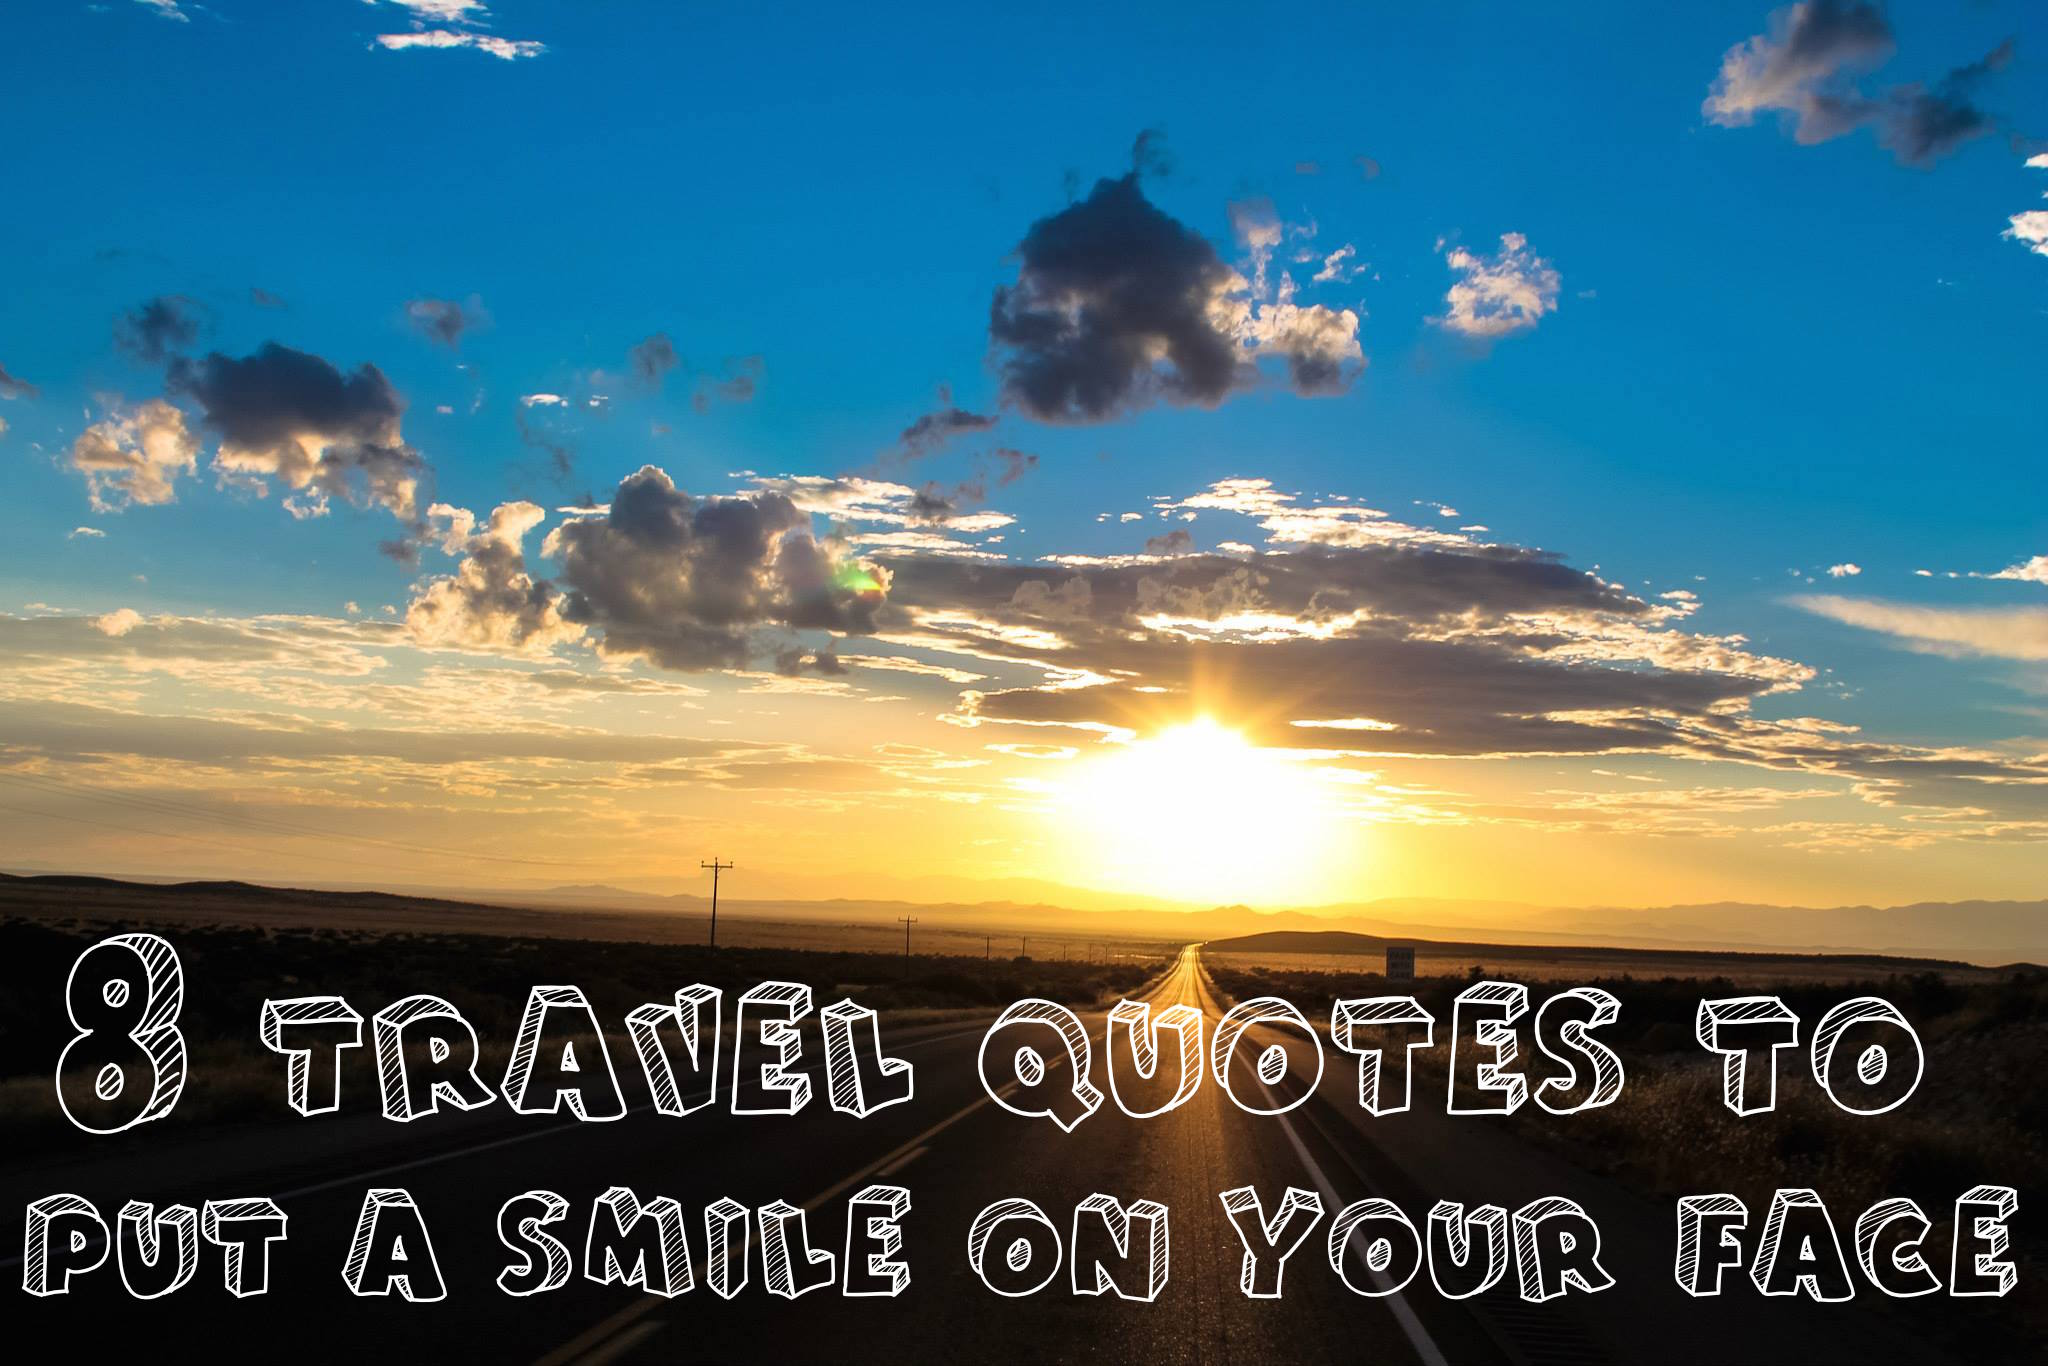 8 Travel Quotes That Will Put A Smile On Your Face!